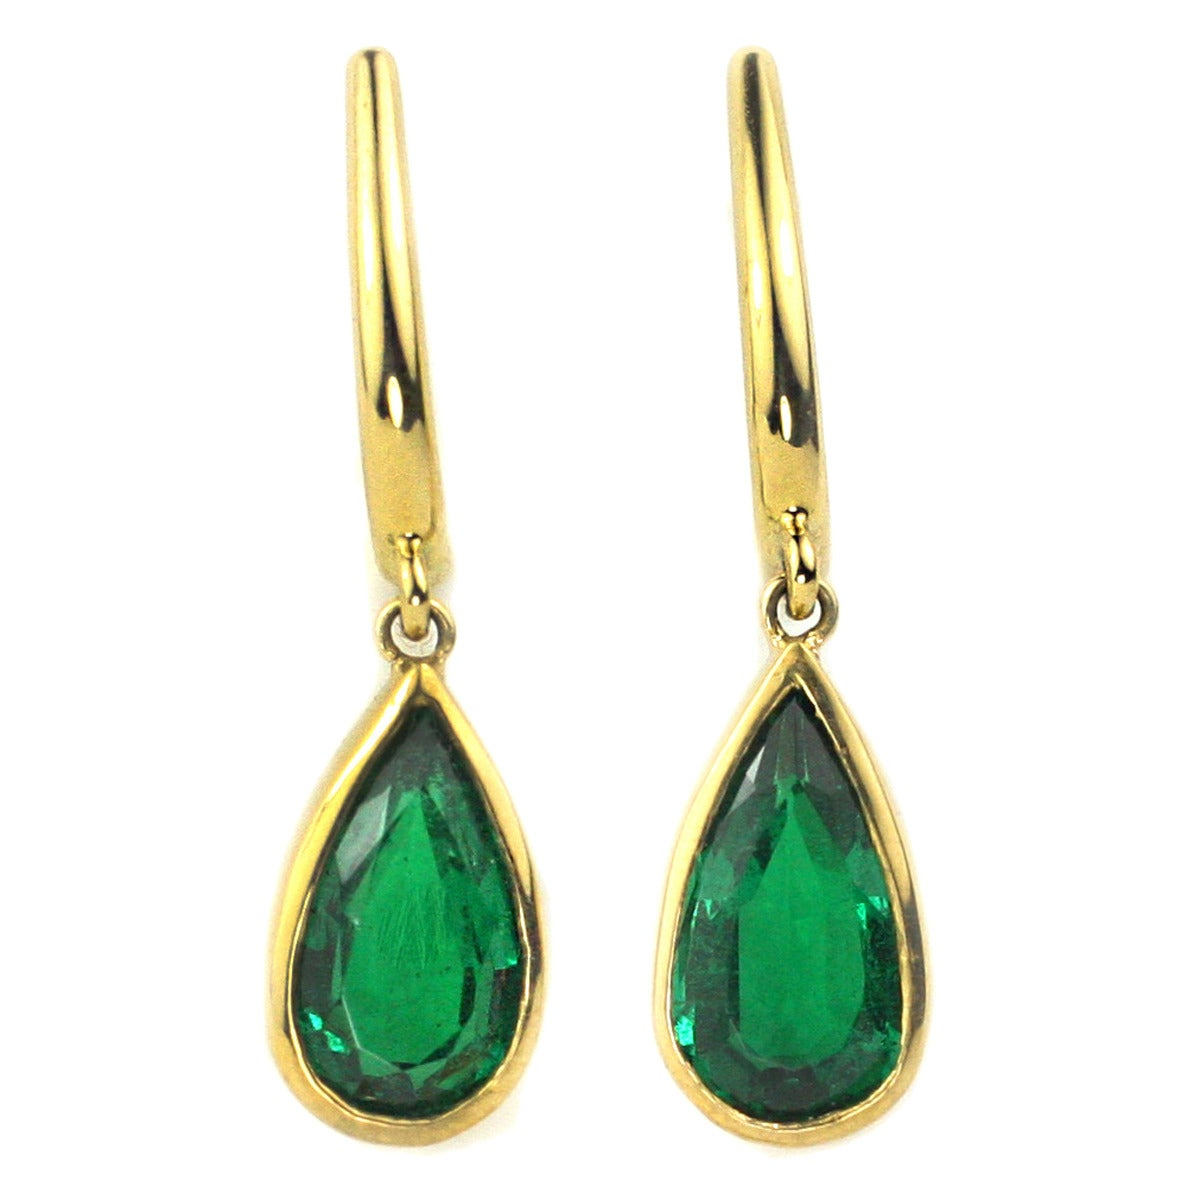 Julius Cohen Pear Shaped Emerald Drop Earrings For